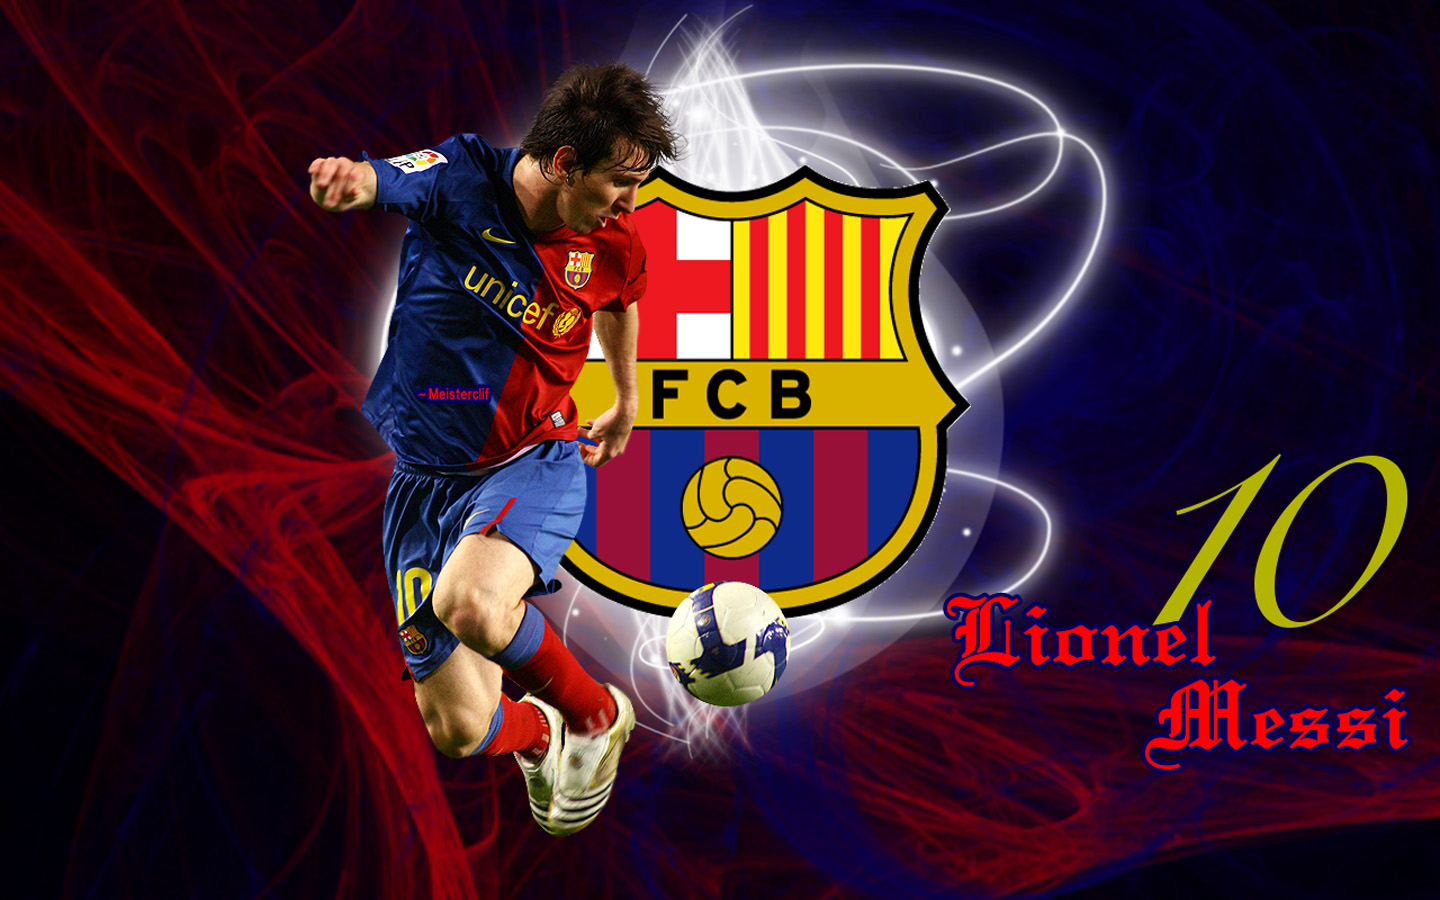 barcelona wallpaper iphone 2015 is high definition wallpaper you can 1440x900